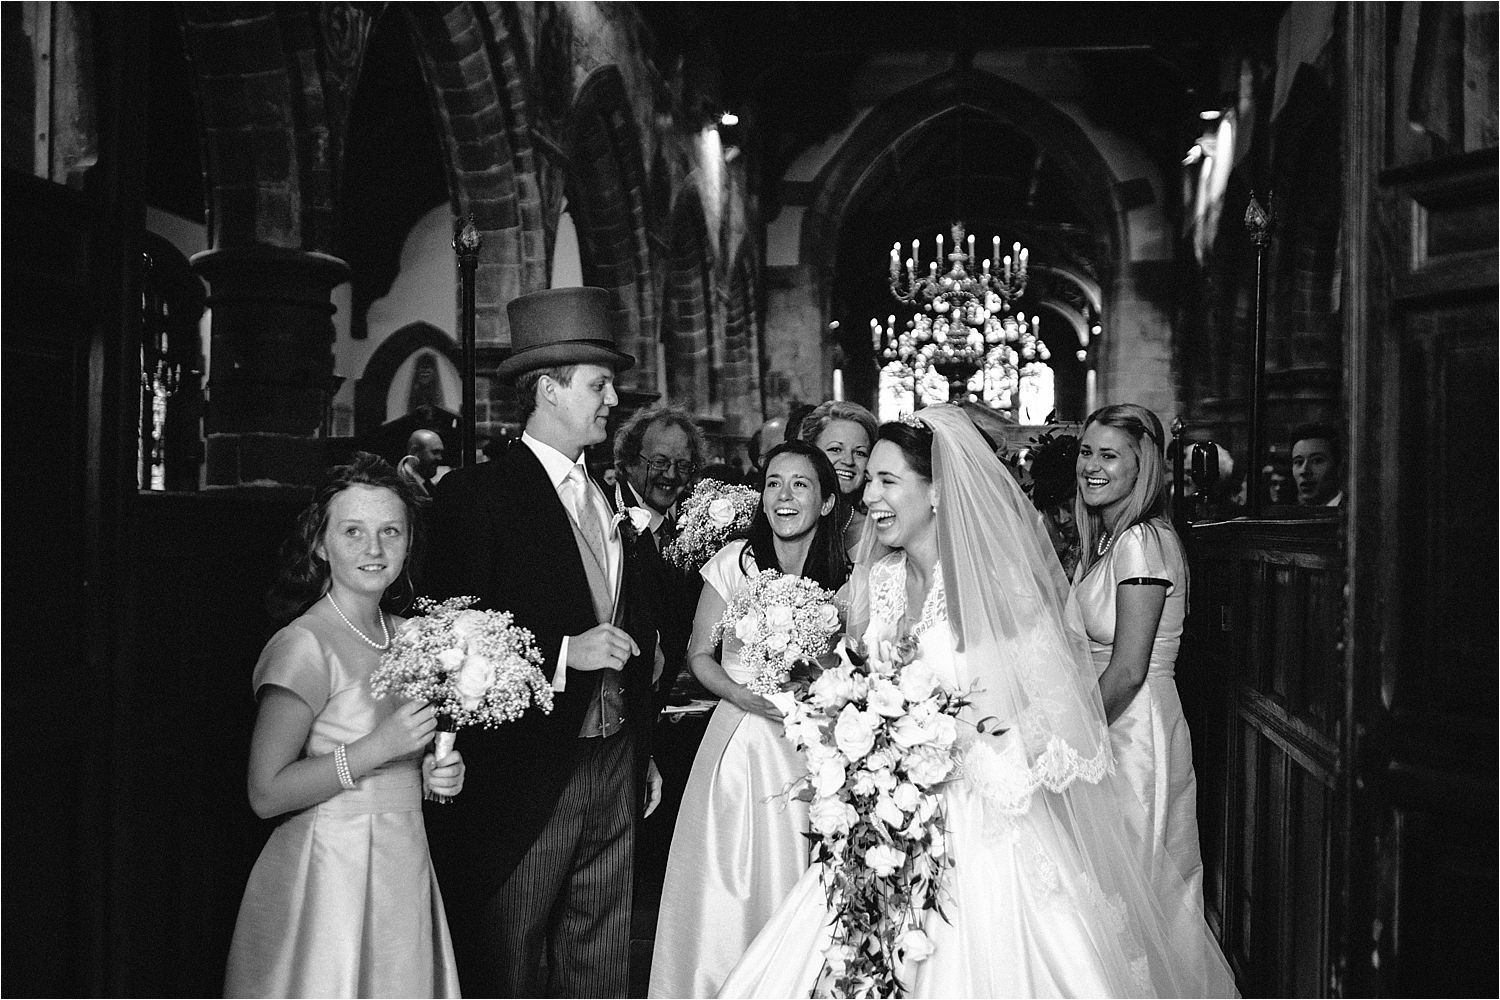 Laughing wedding group at St Peter's church Prestbury